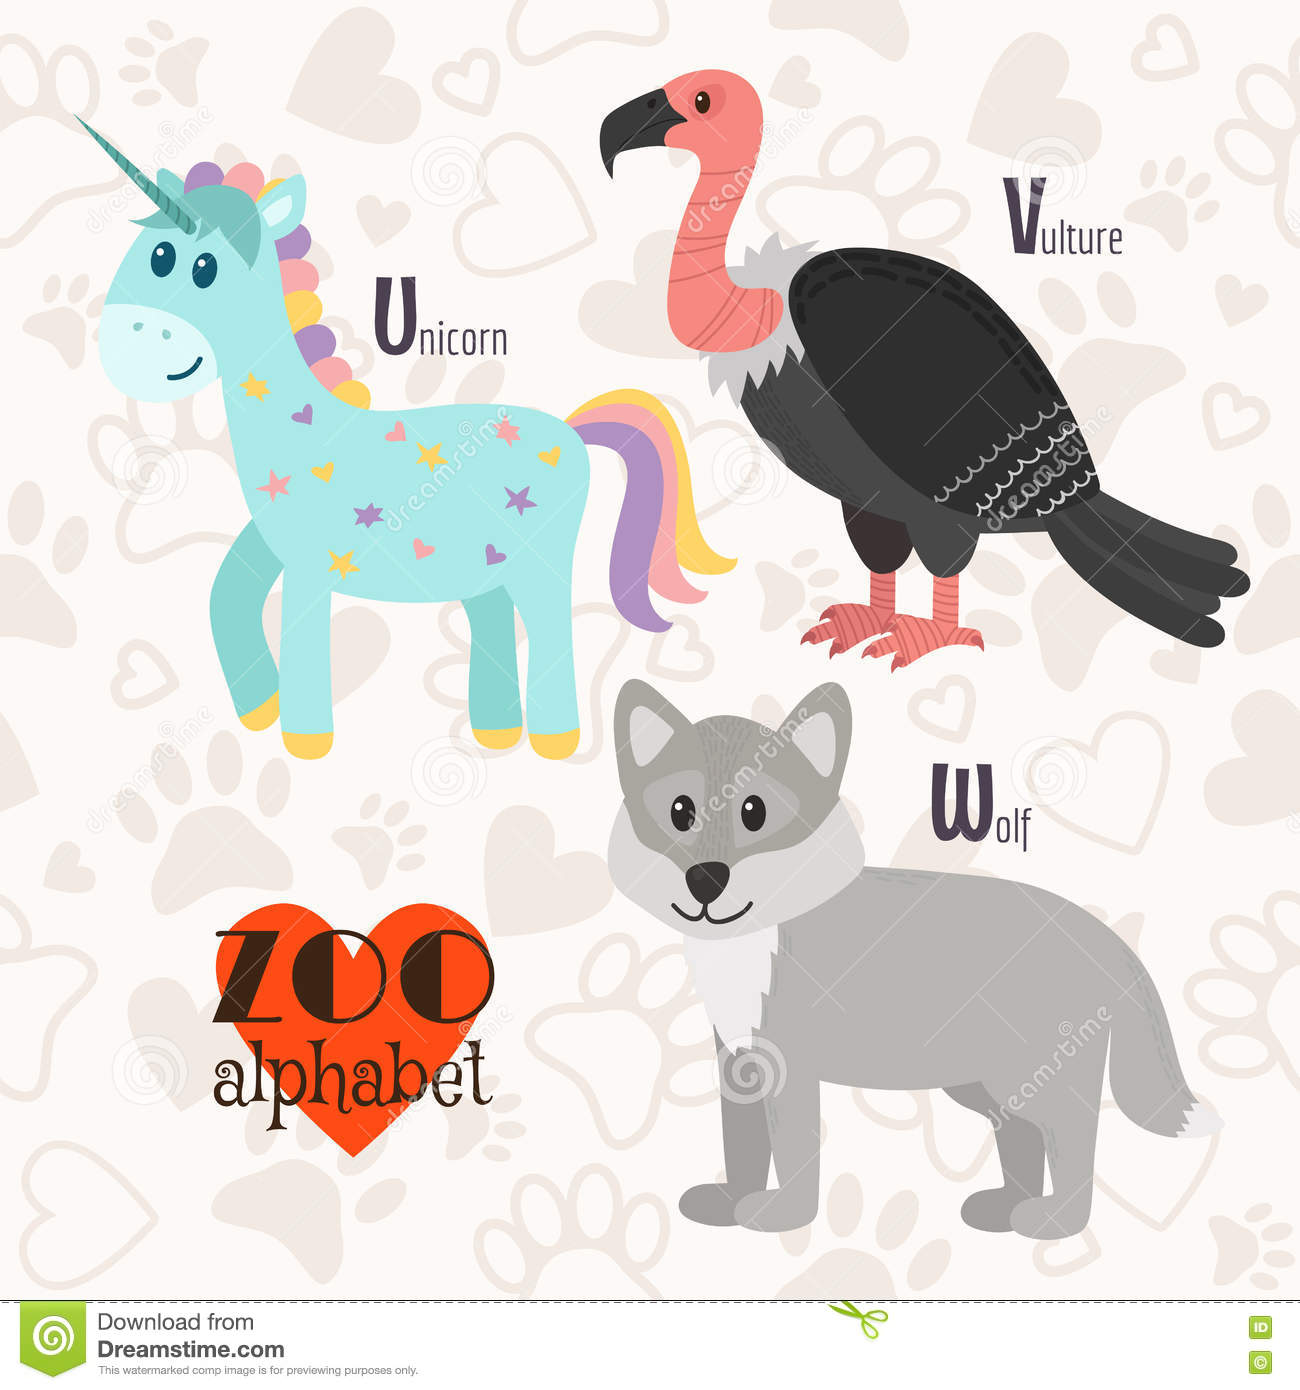 Illustration Isolated Alphabet Letter U Unicorn V Vulture Vector Illustration